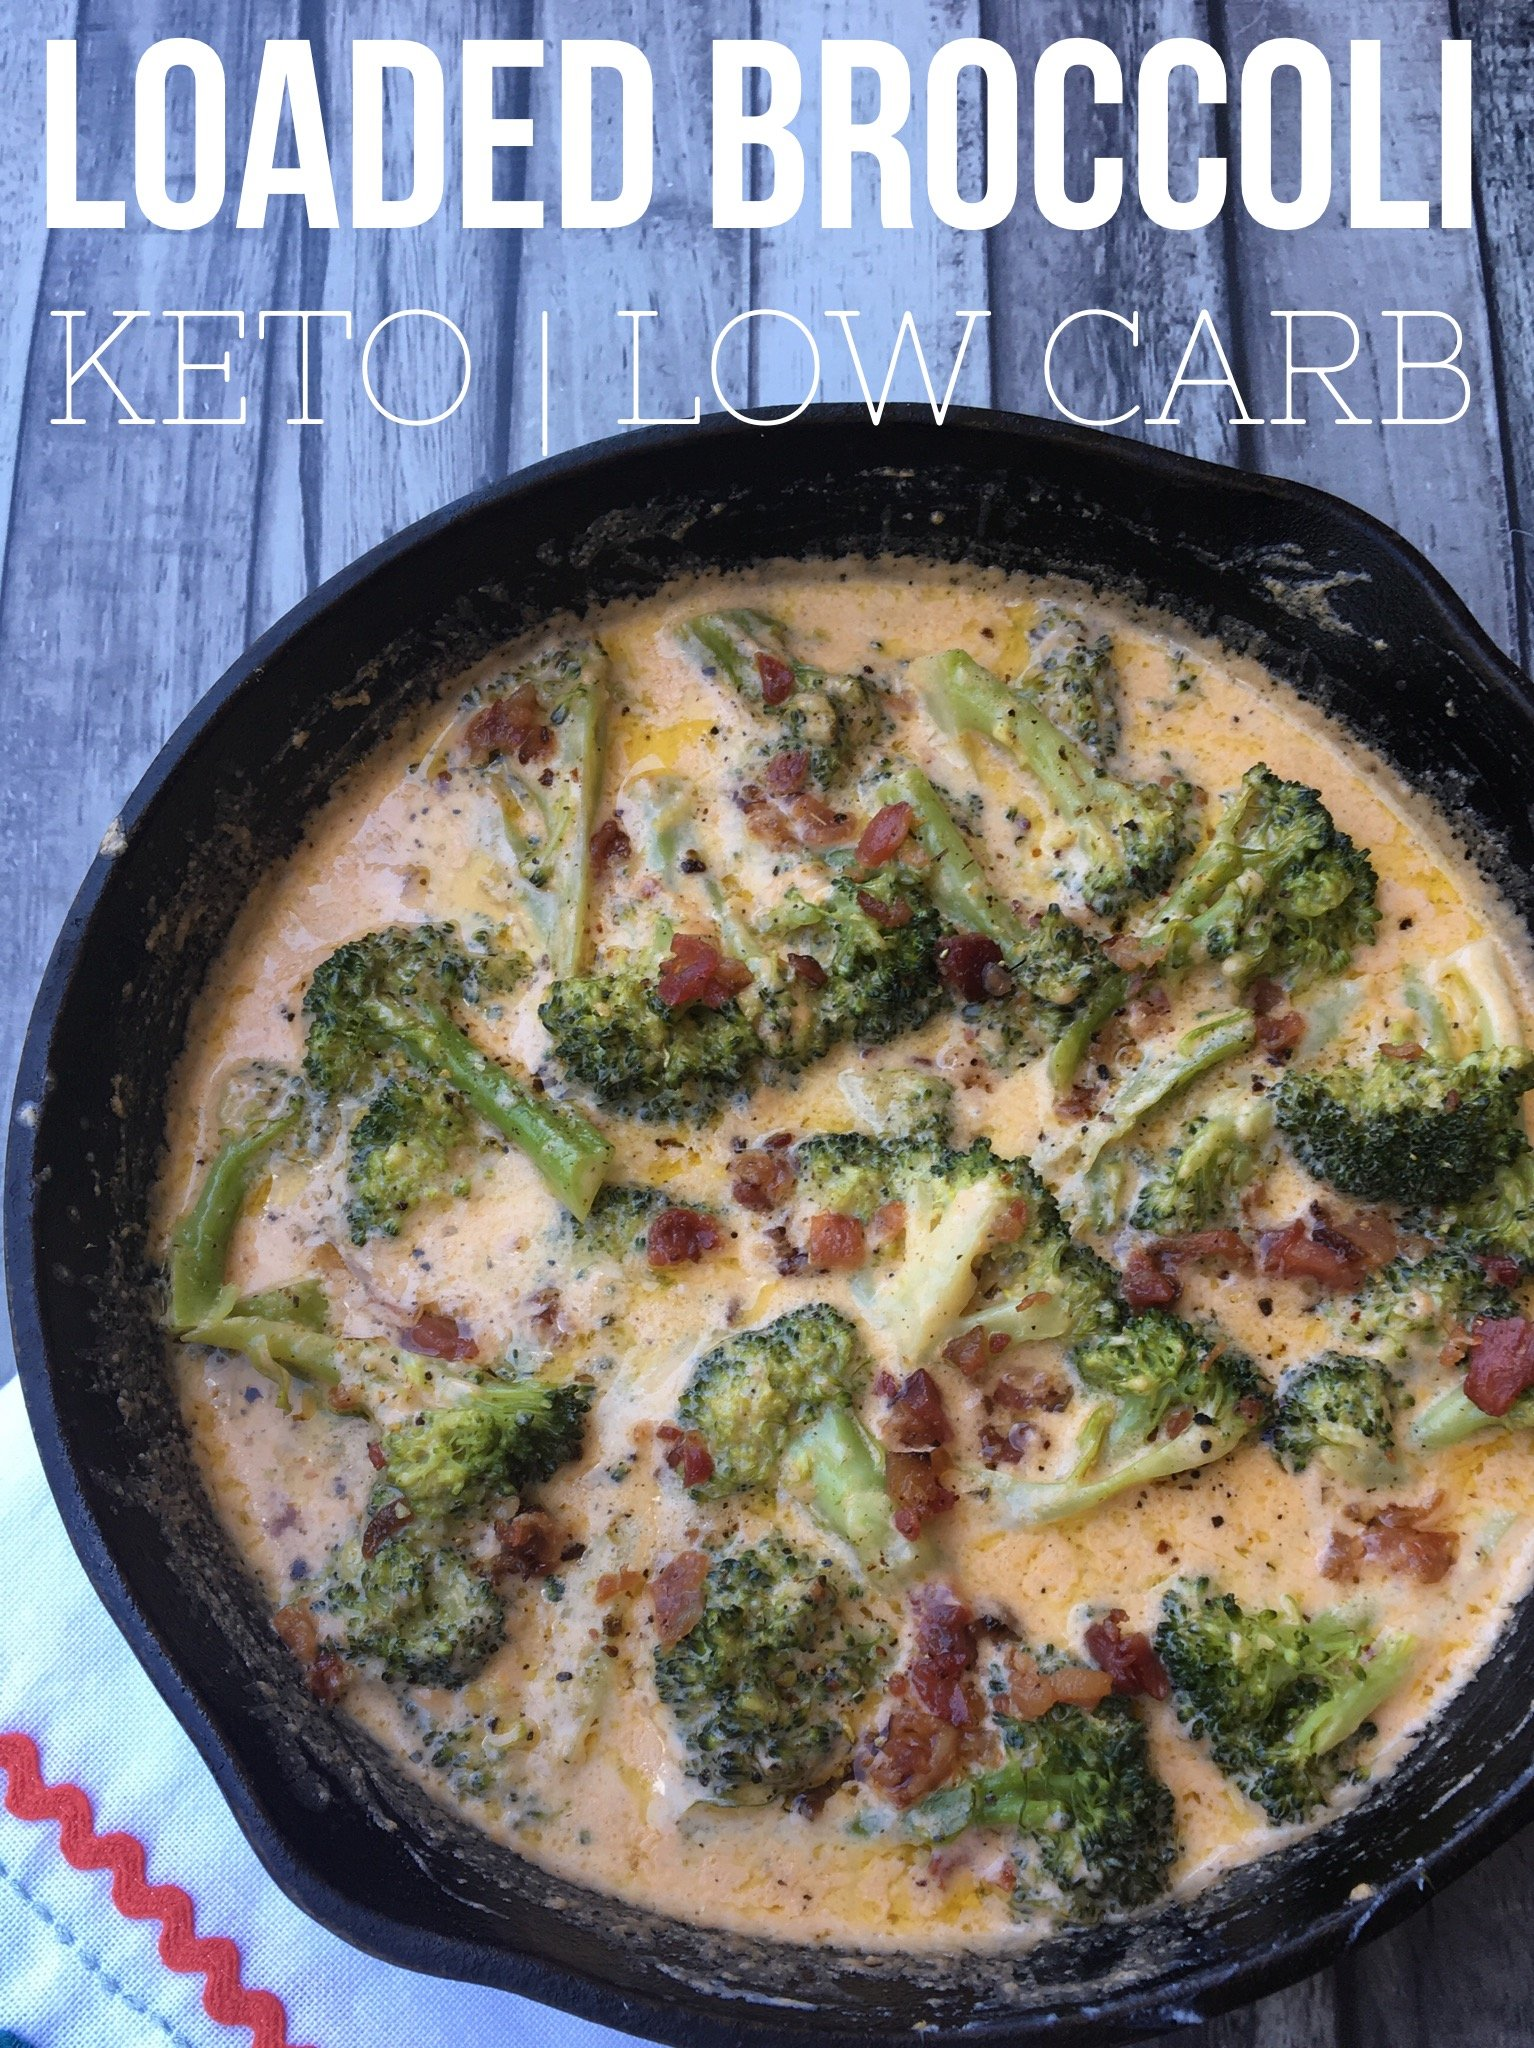 Loaded Broccoli {keto/low carb}